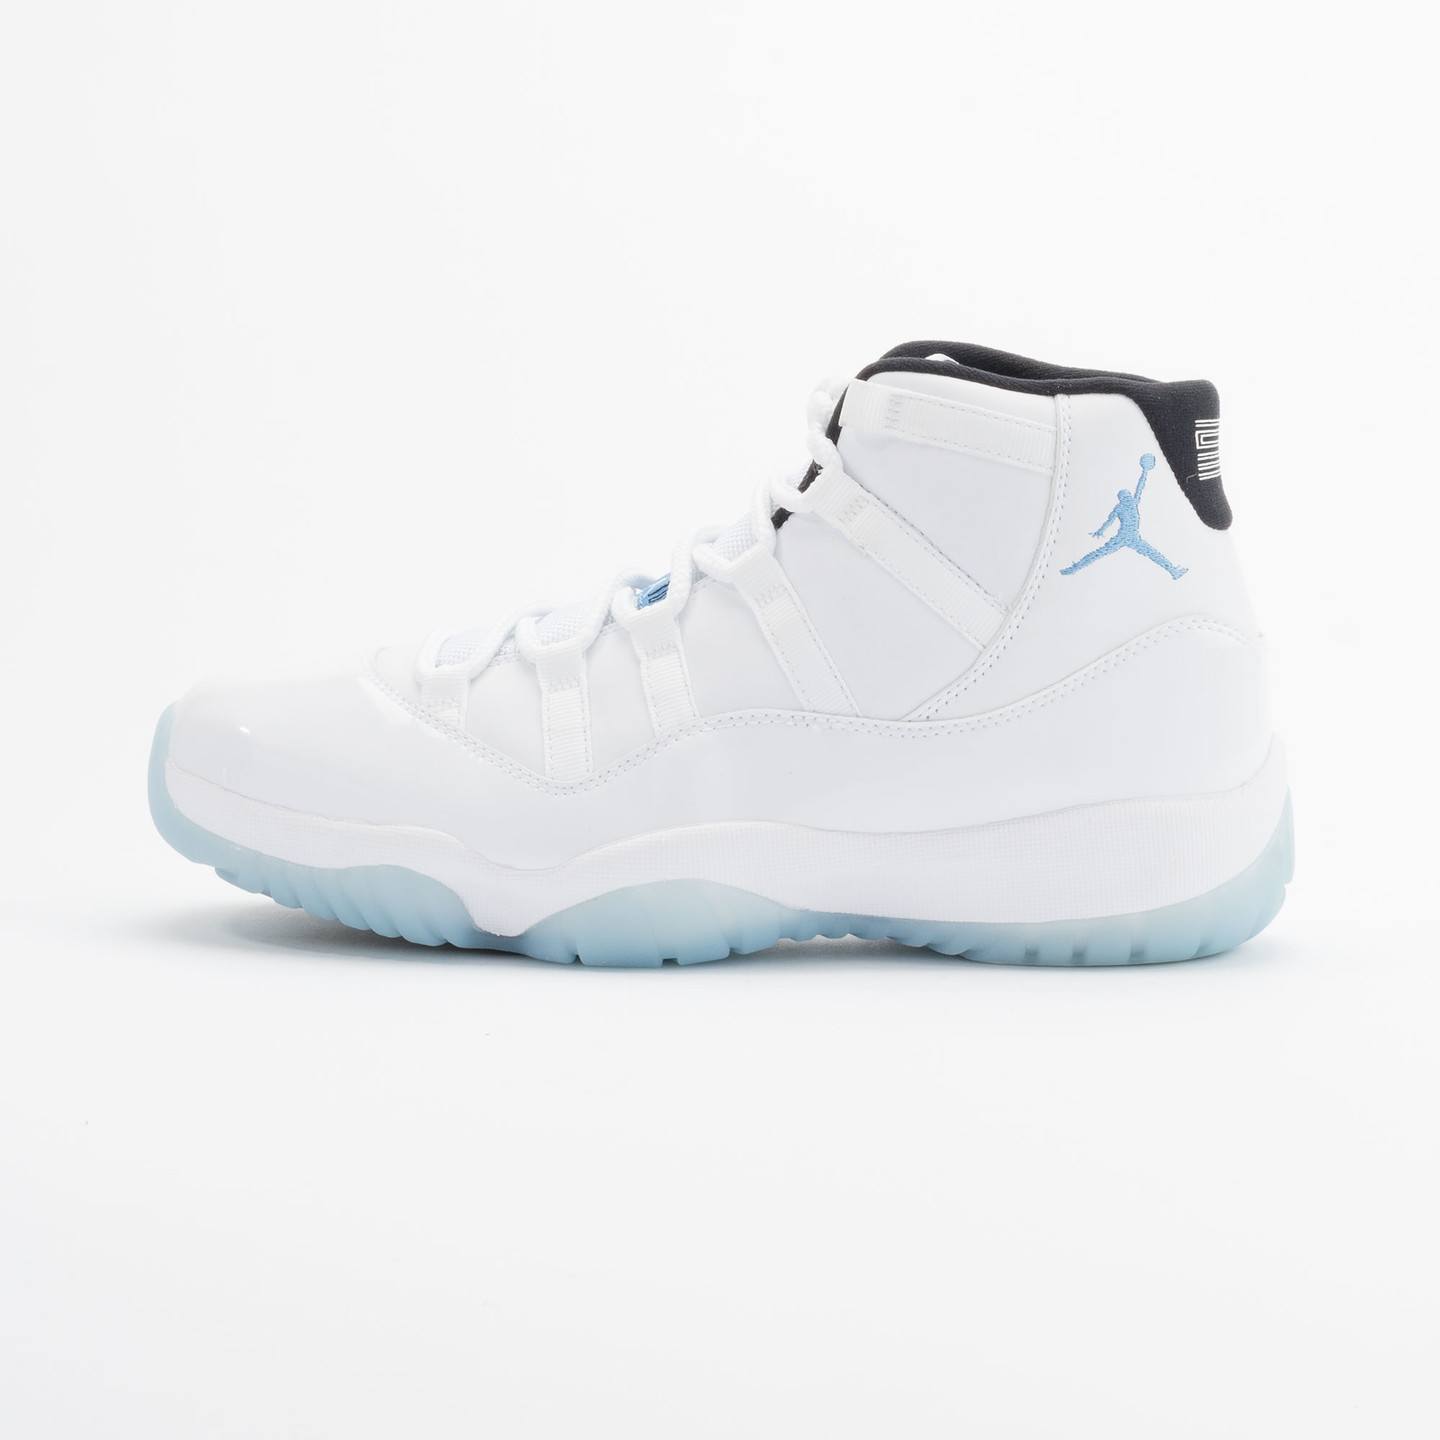 Jordan Air Jordan 11 Retro White/Legend Blue-Black 378037-117-40